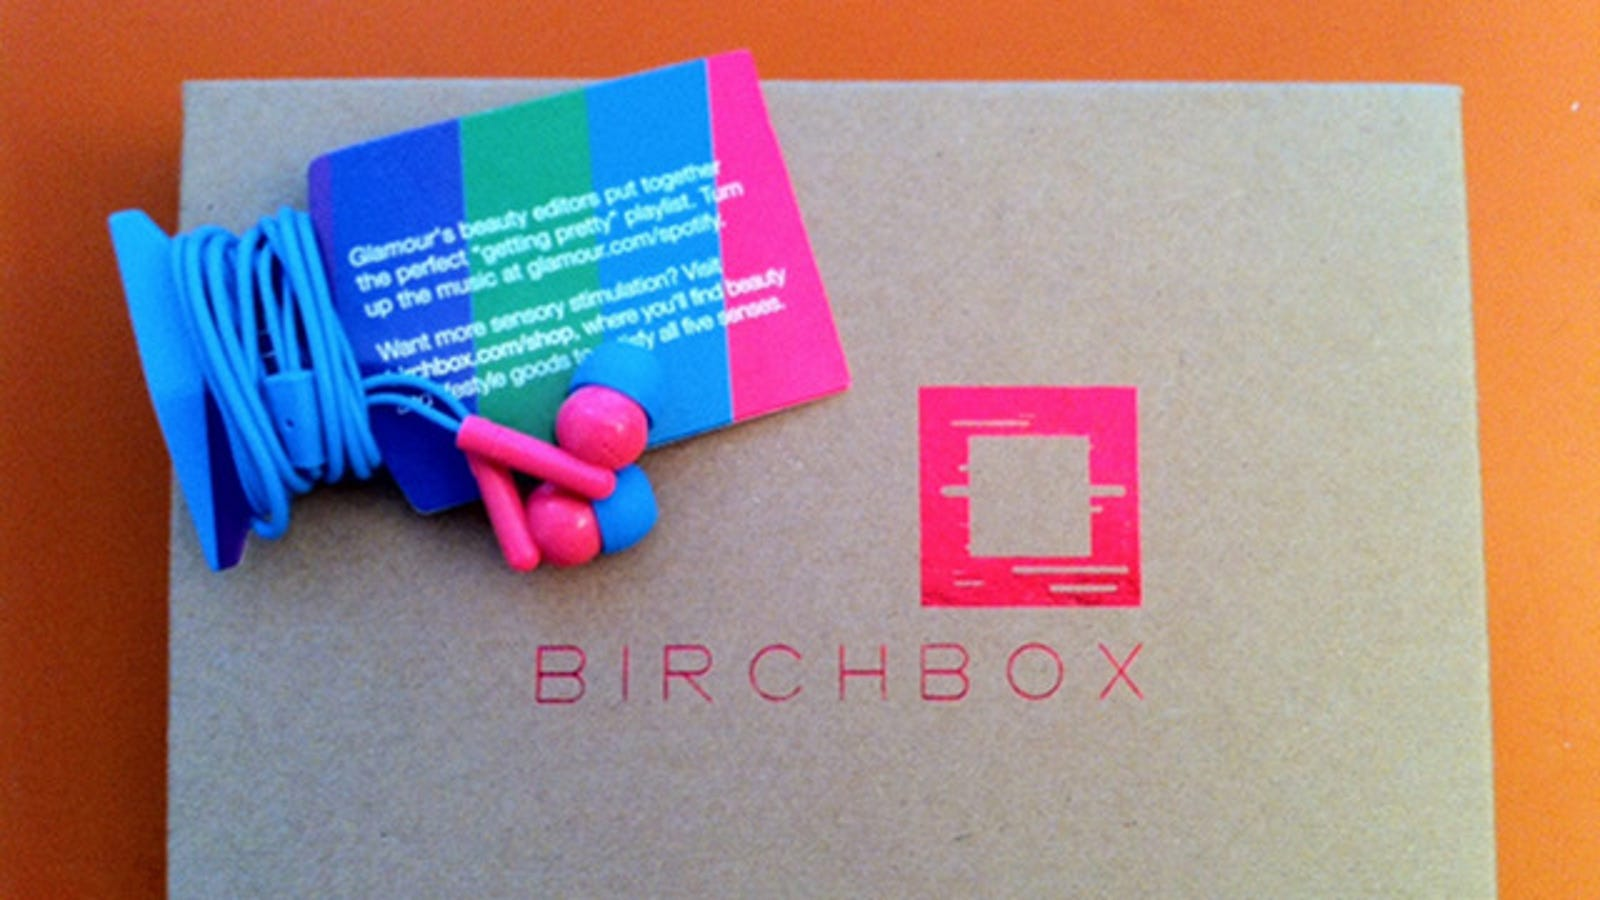 klipsch earbuds sport - Birchbox: At Least Those Crappy Earbuds Are Cute!